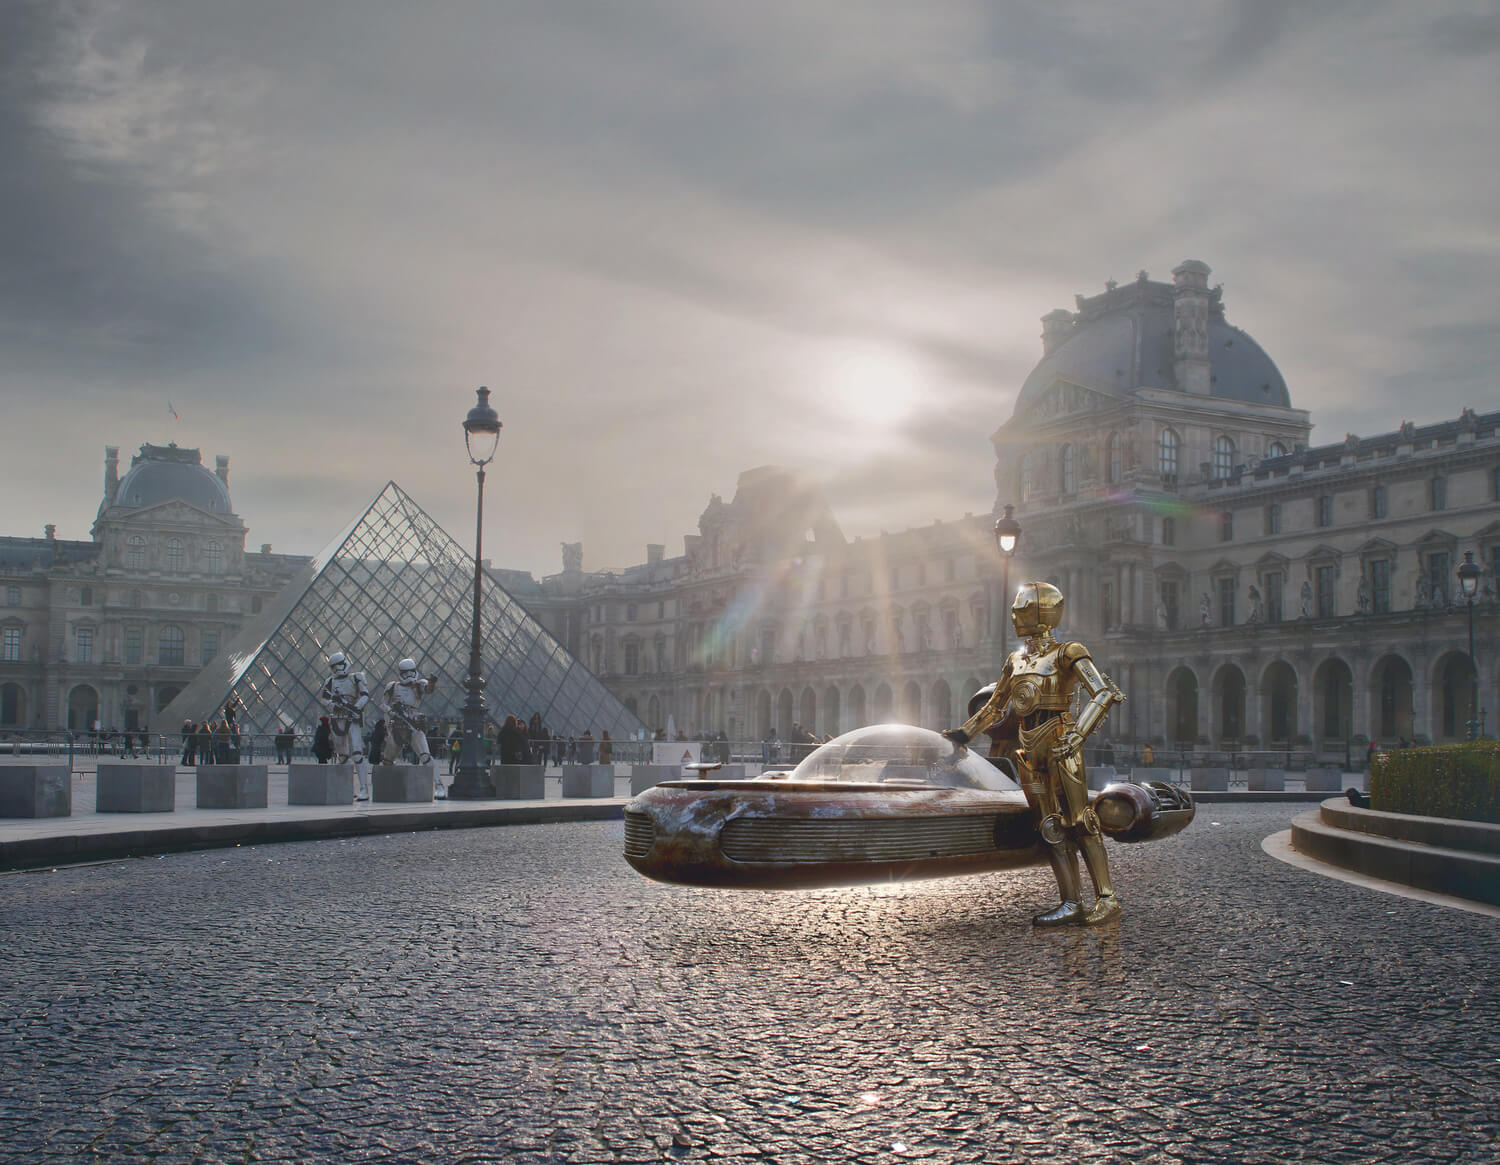 c3po en Paris fotomontaje